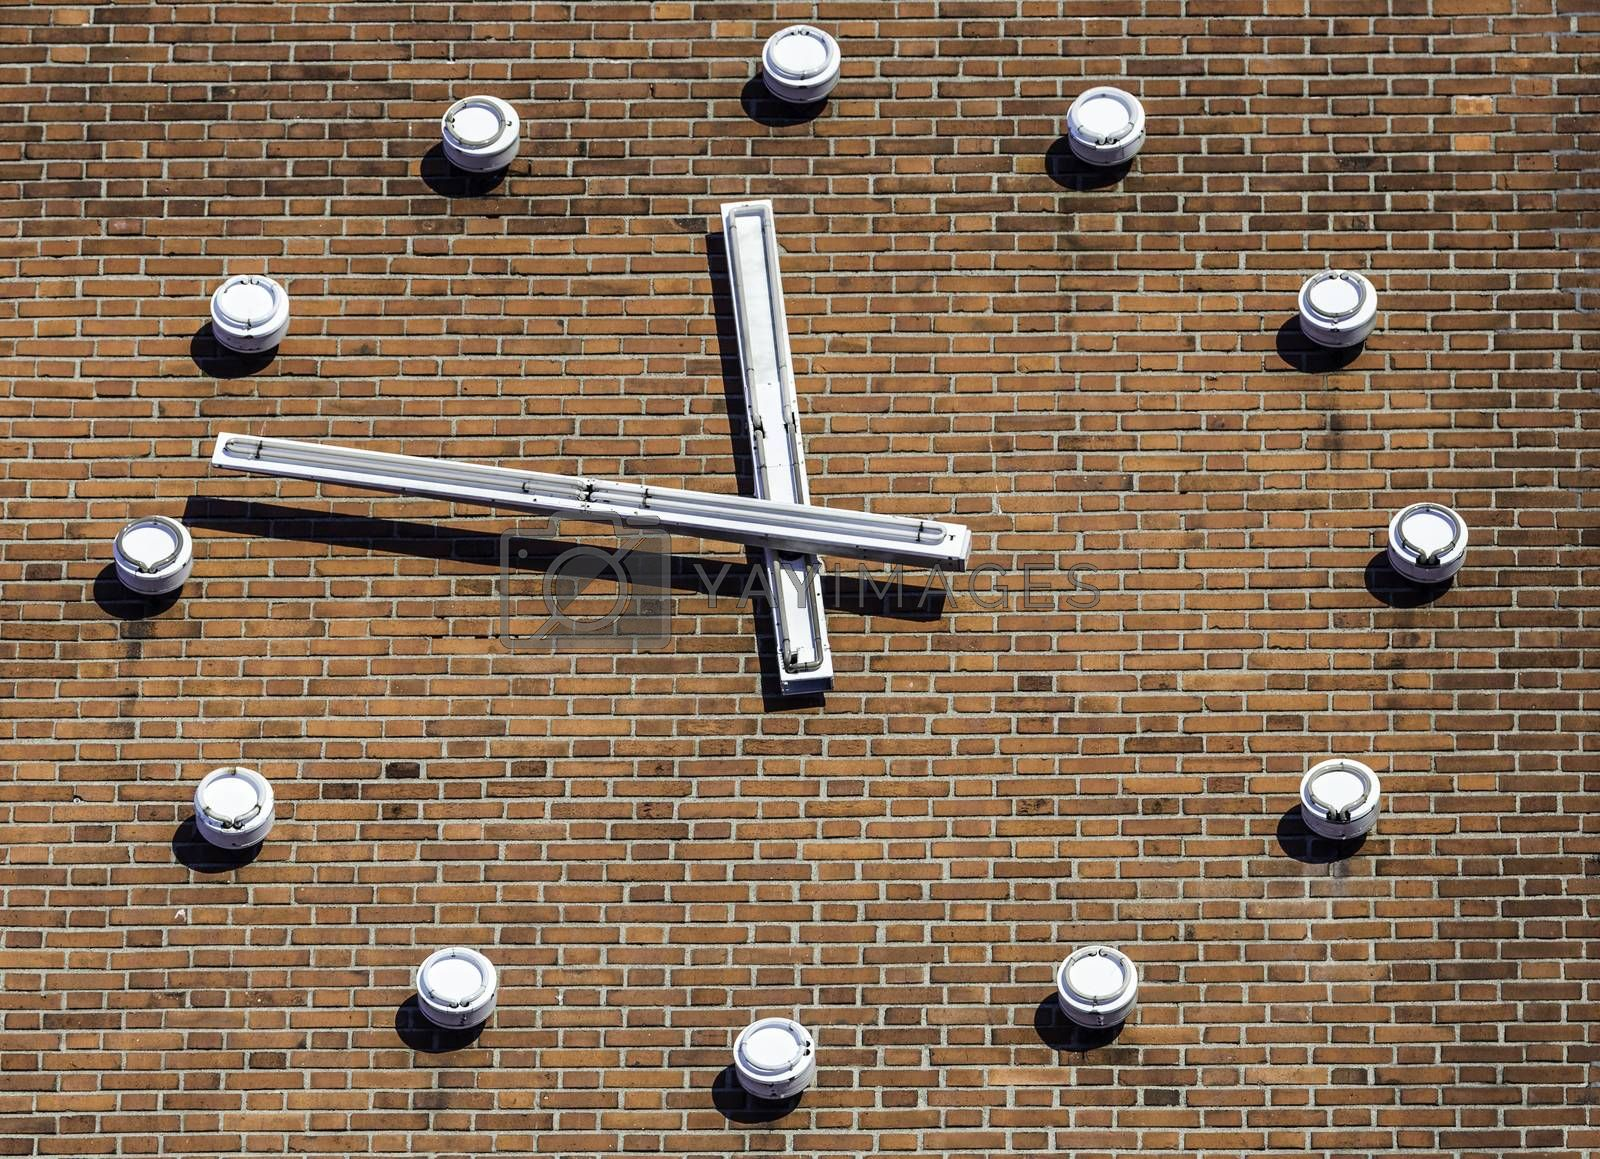 Large Clock on Building by Emmoth